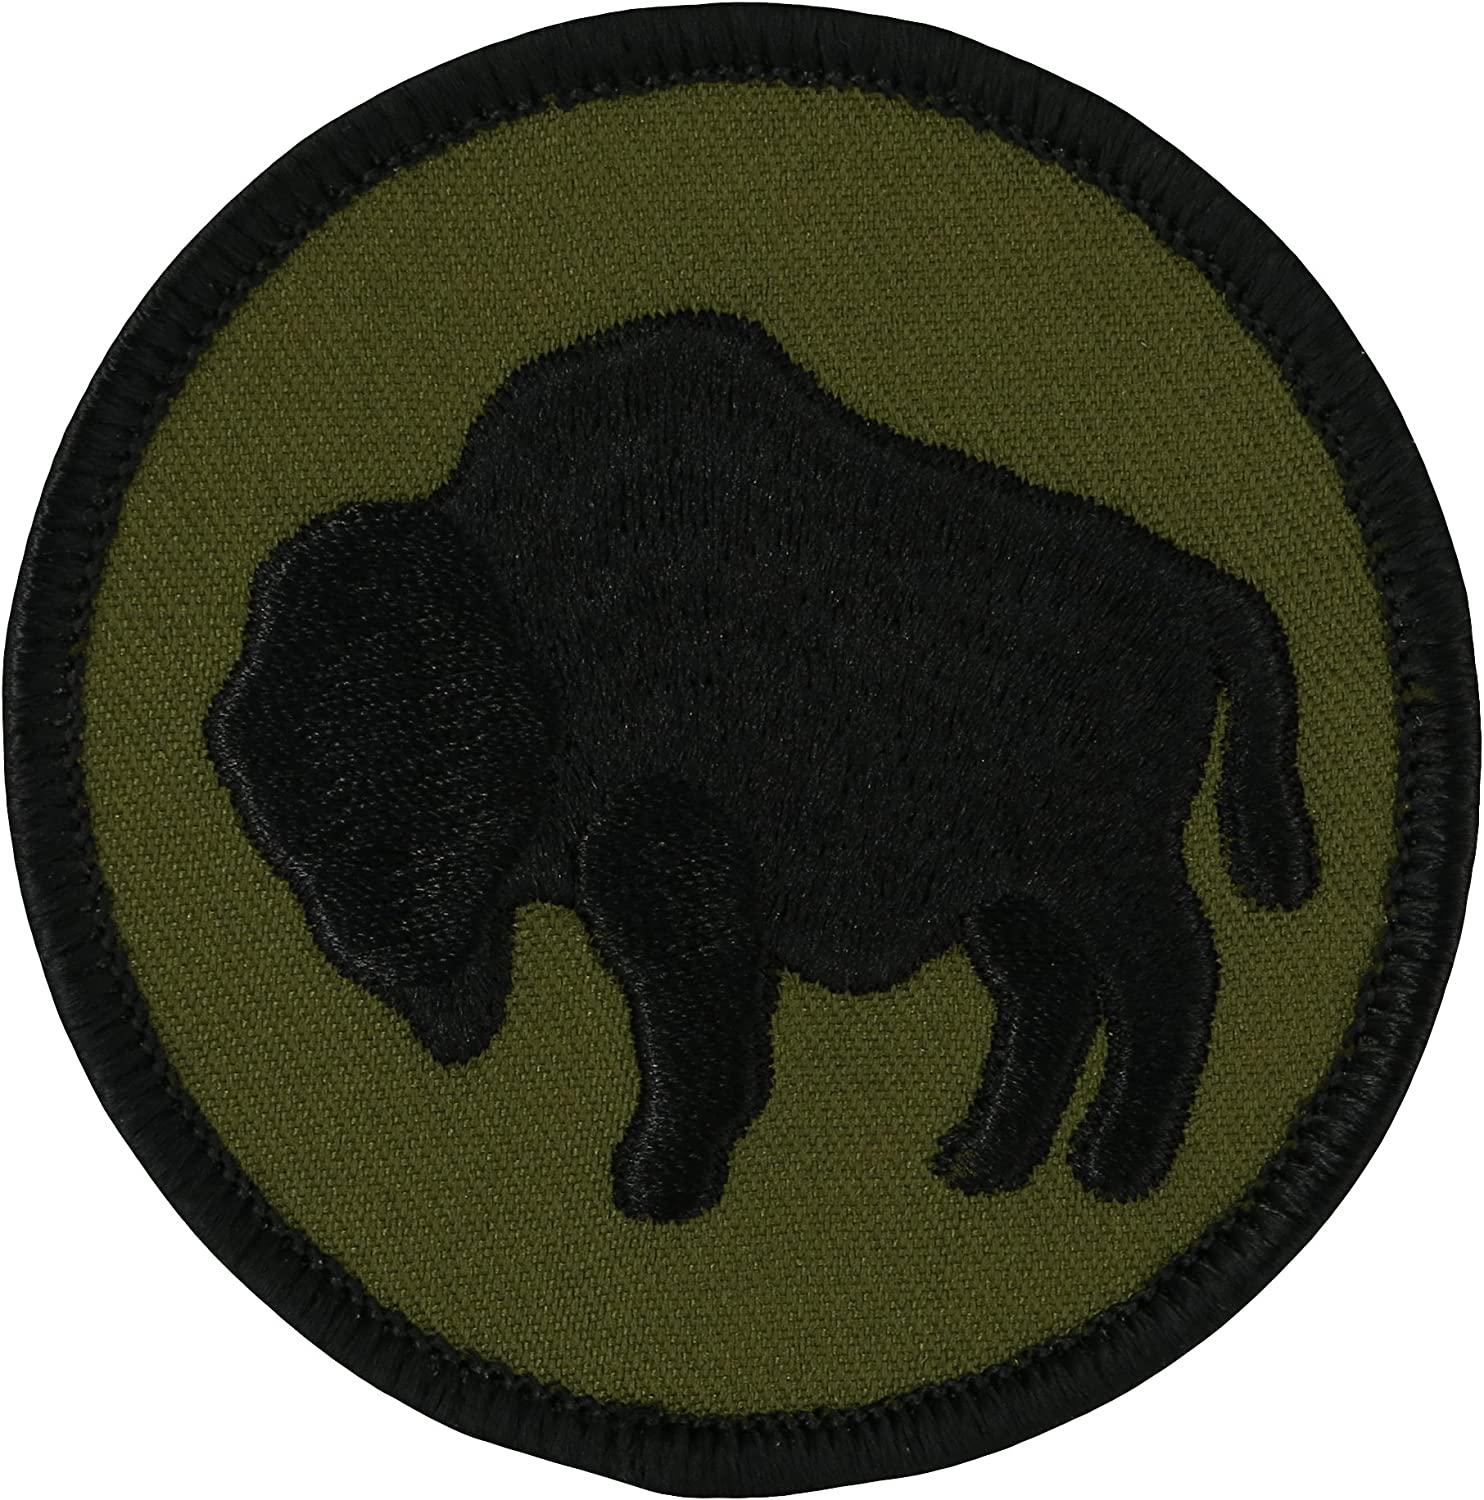 United States 92nd Infanrty Brigade patch